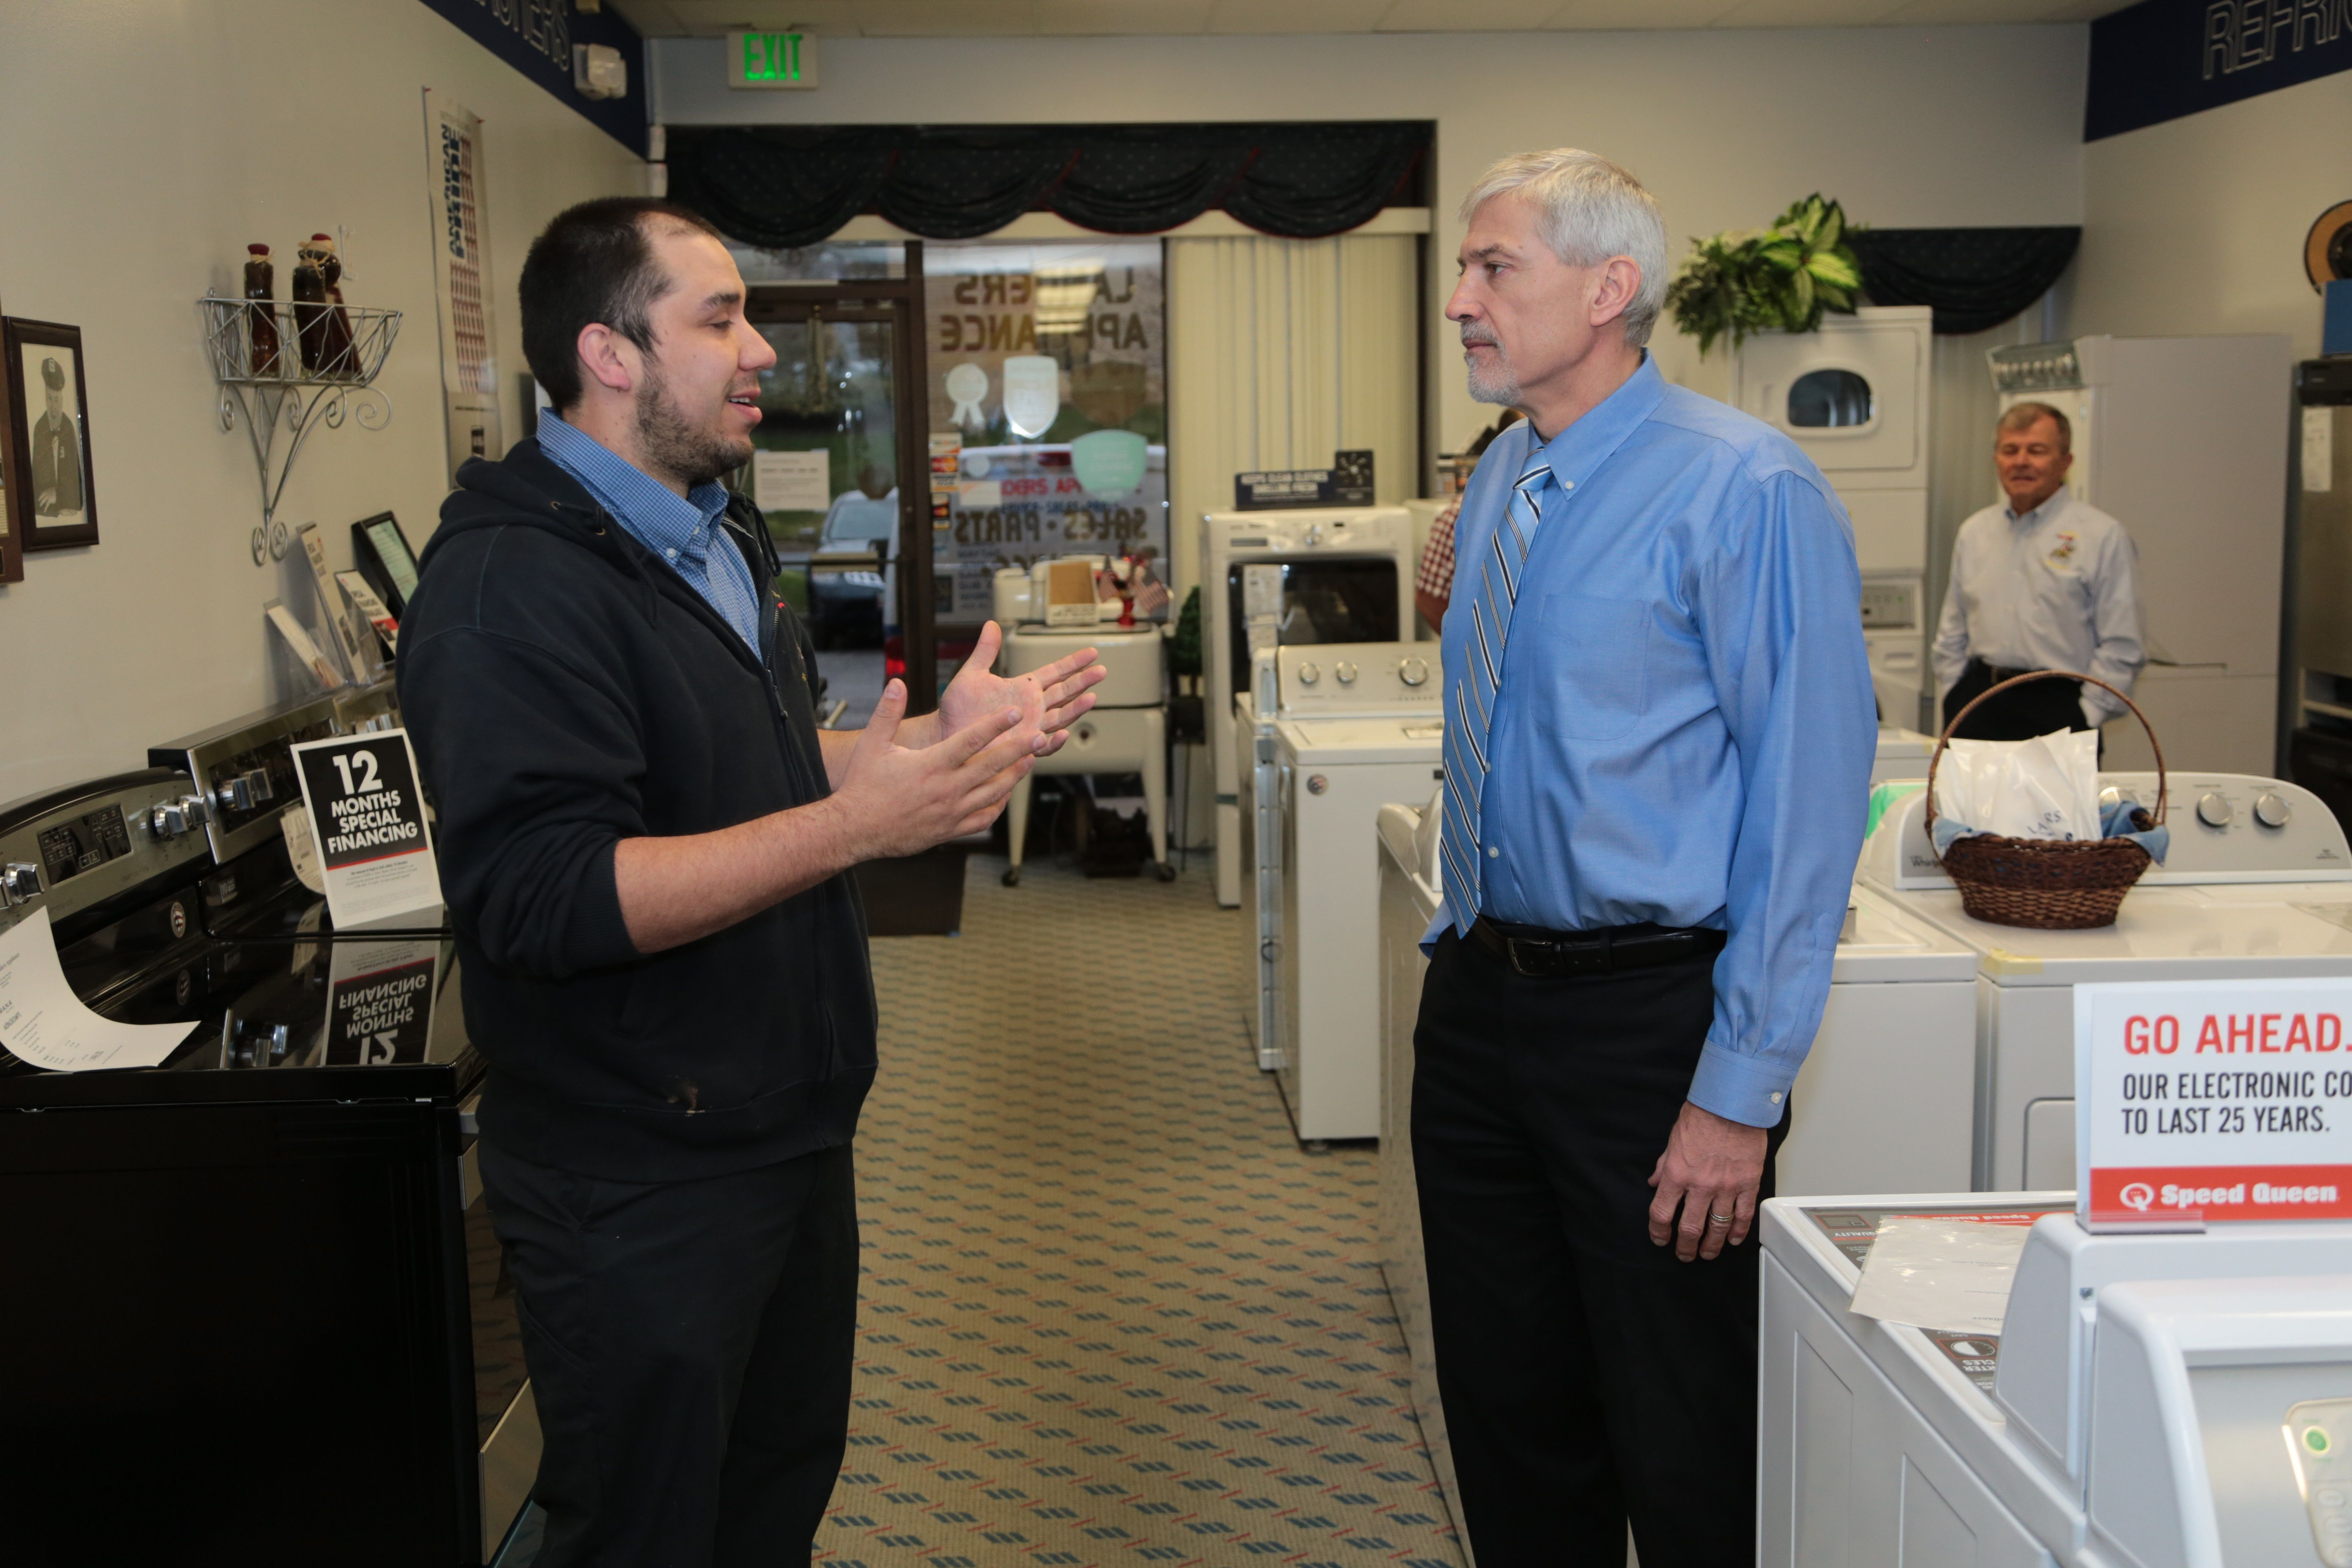 Our experts at Landers Appliance can help you decide if it's better to repair or replace your appliance. If you need a new one, we have a showroom and experts to help you get exactly what you need.